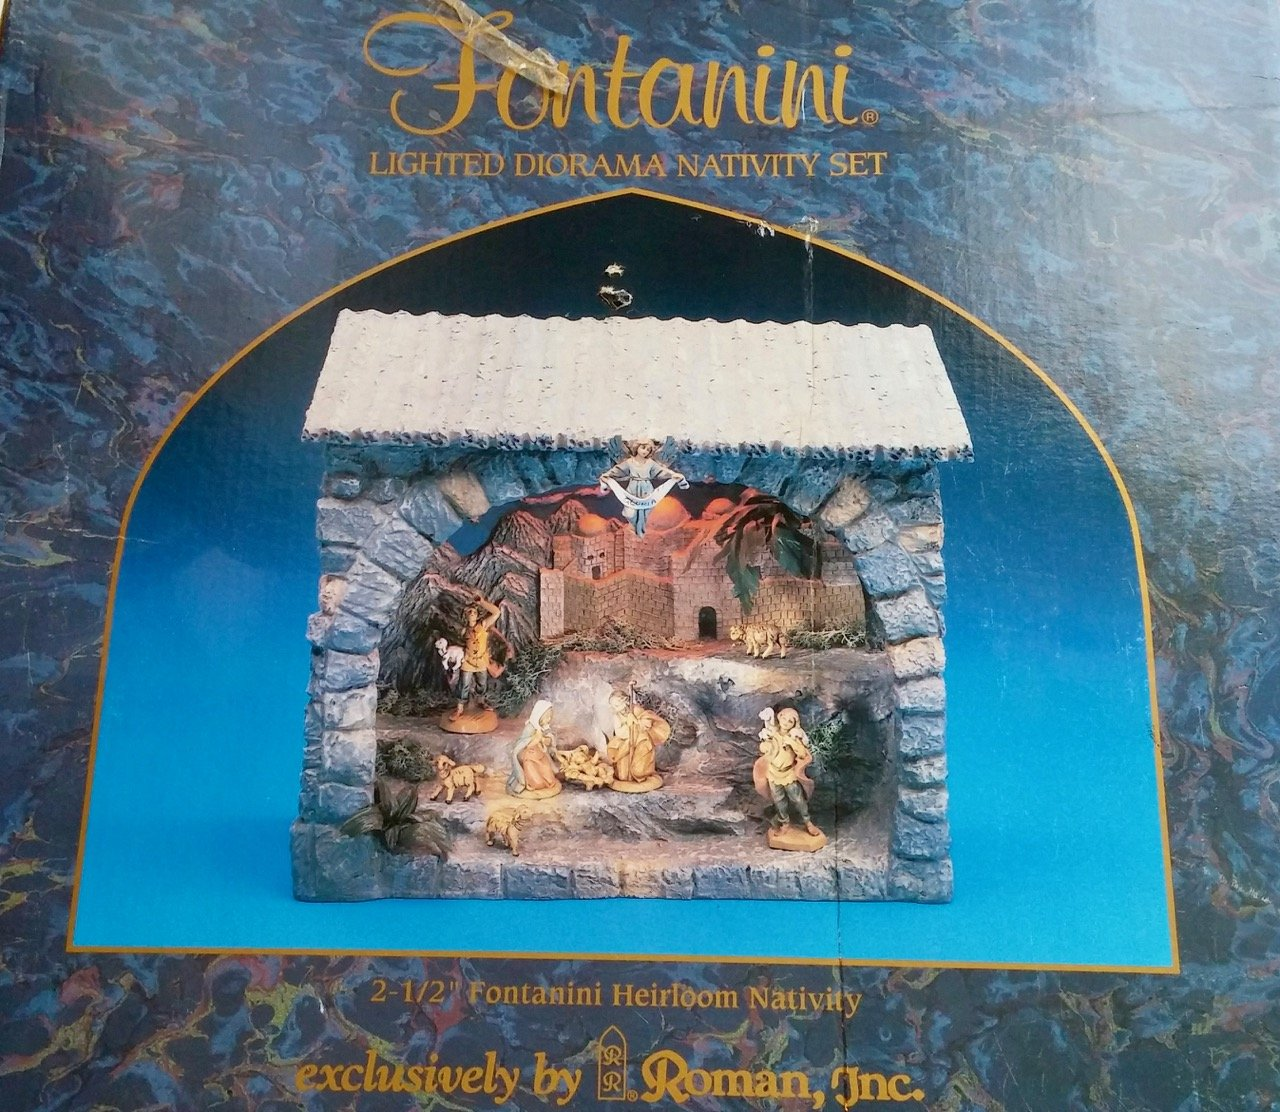 Fontanini Lighted Diorama Nativity Set for 2.5 Heirloom Collection Nativities 54243